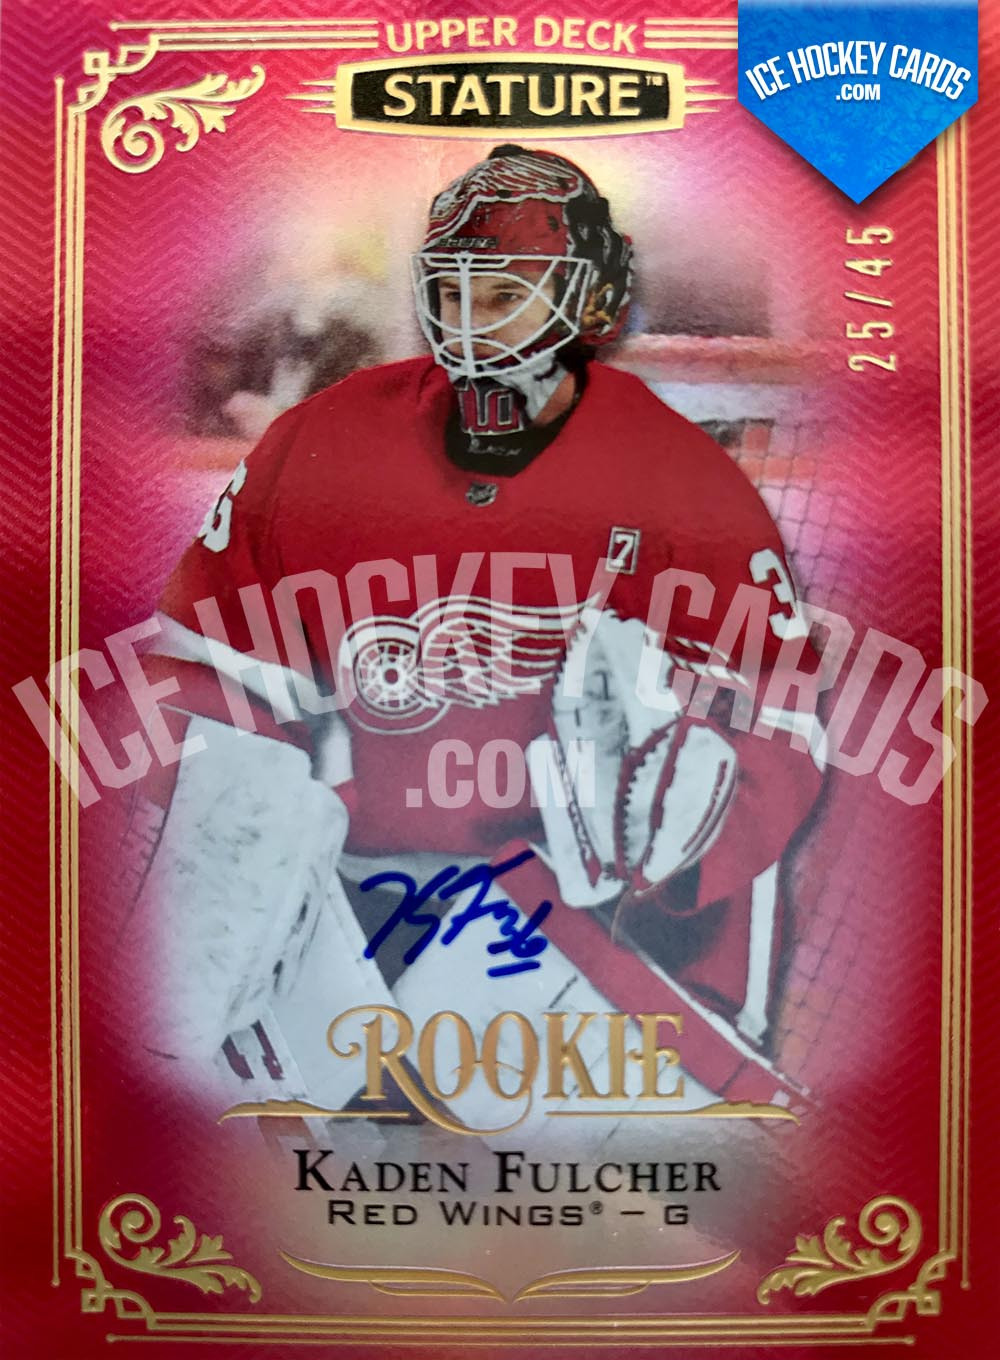 Upper Deck - Stature 2019-20 - Kaden Fulcher Autographed Rookie Card # to 45